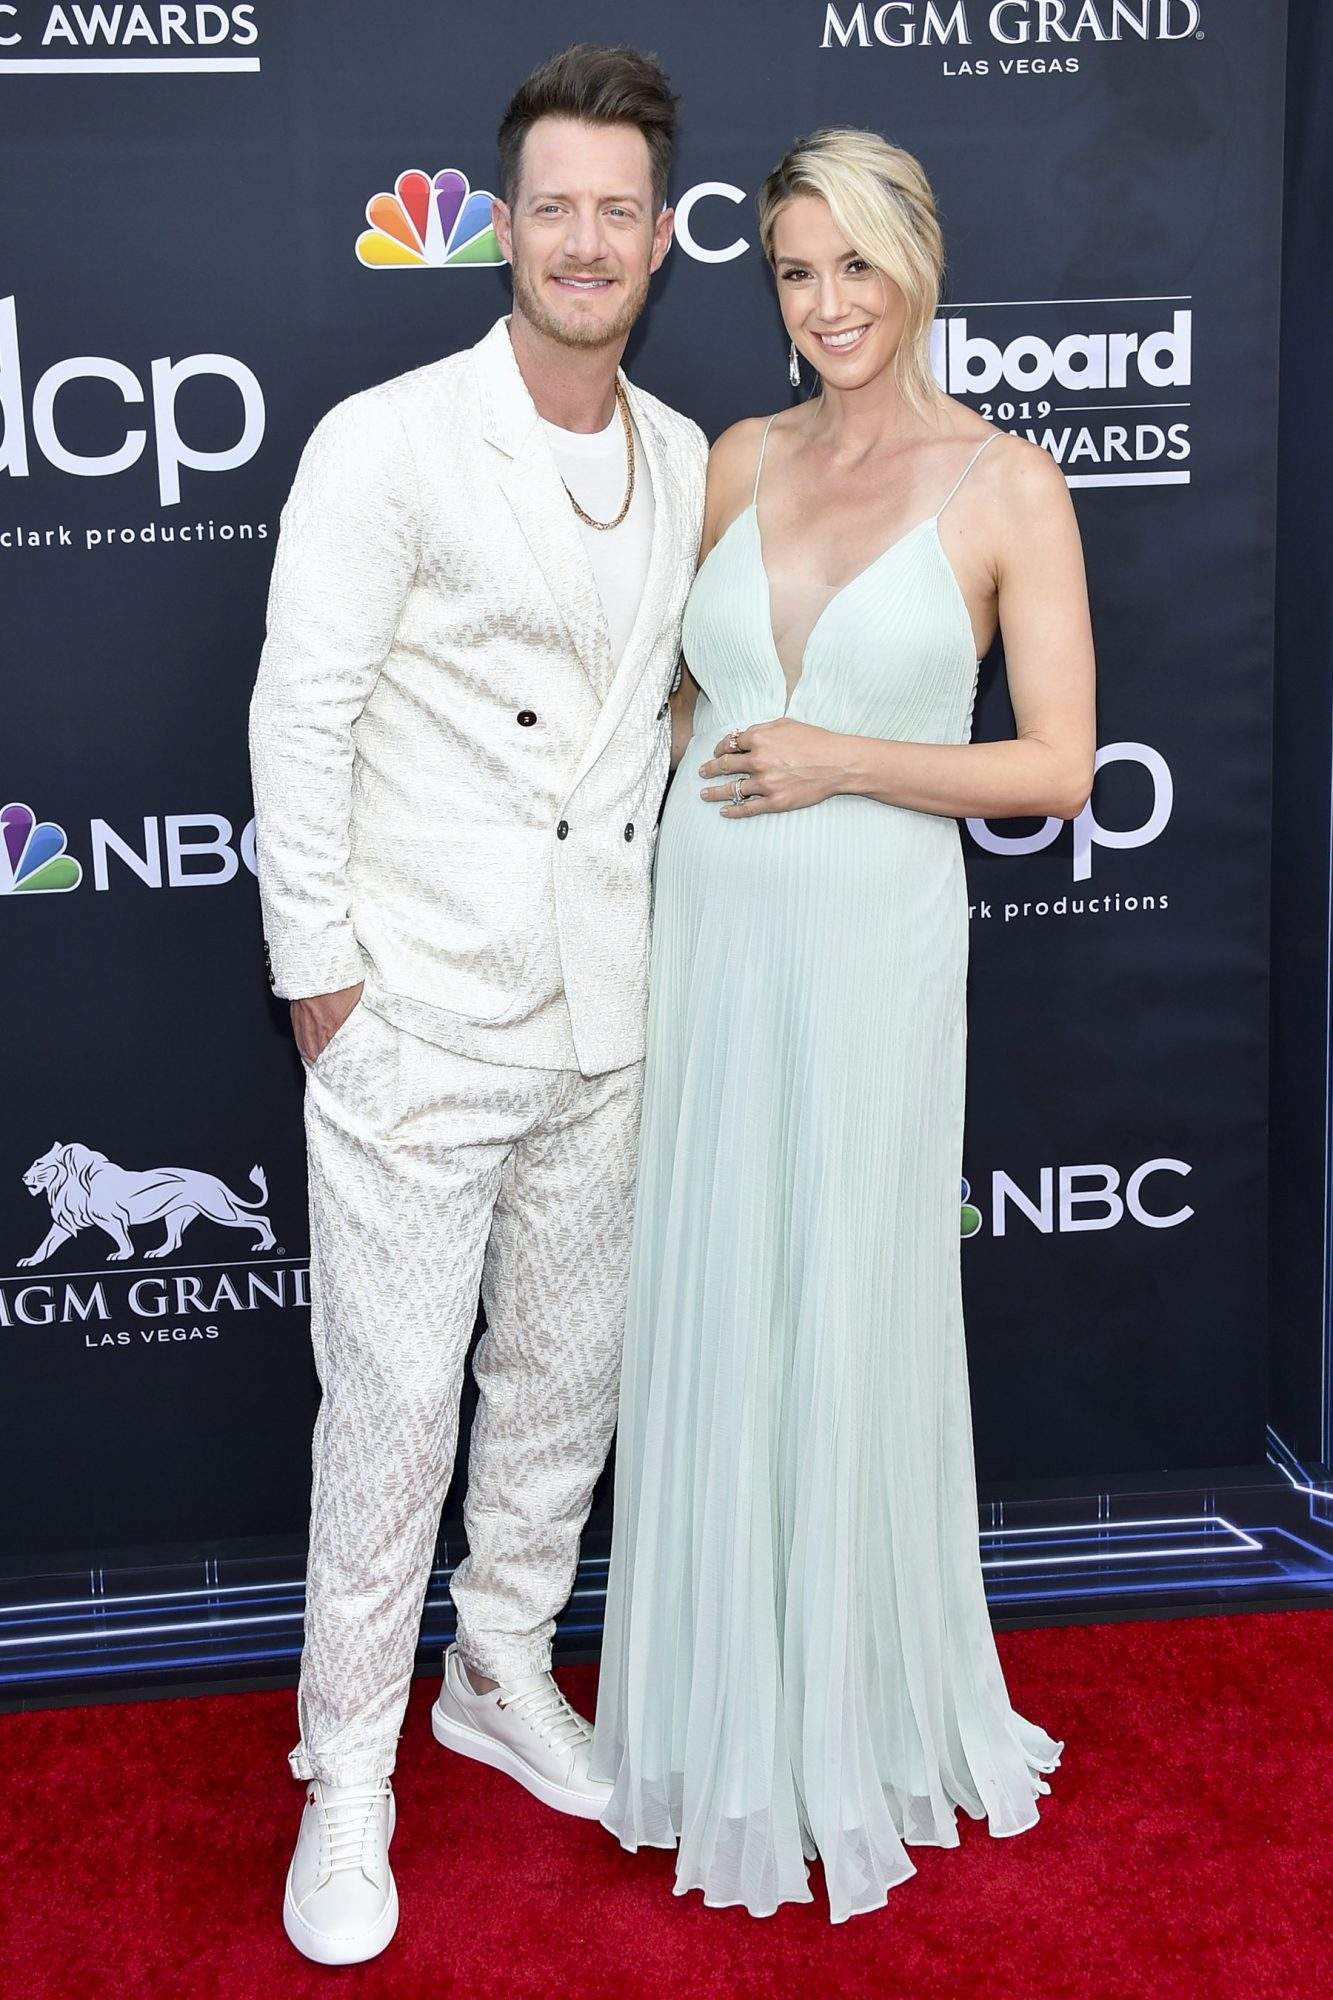 Tyler Hubbard of Florida Georgia Line and Hayley Stommel attend the 2019 Billboard Music Awards at MGM Grand Garden Arena on May 1, 2019 in Las Vegas, Nevada. (Photo by John Shearer/Getty Images for dcp)